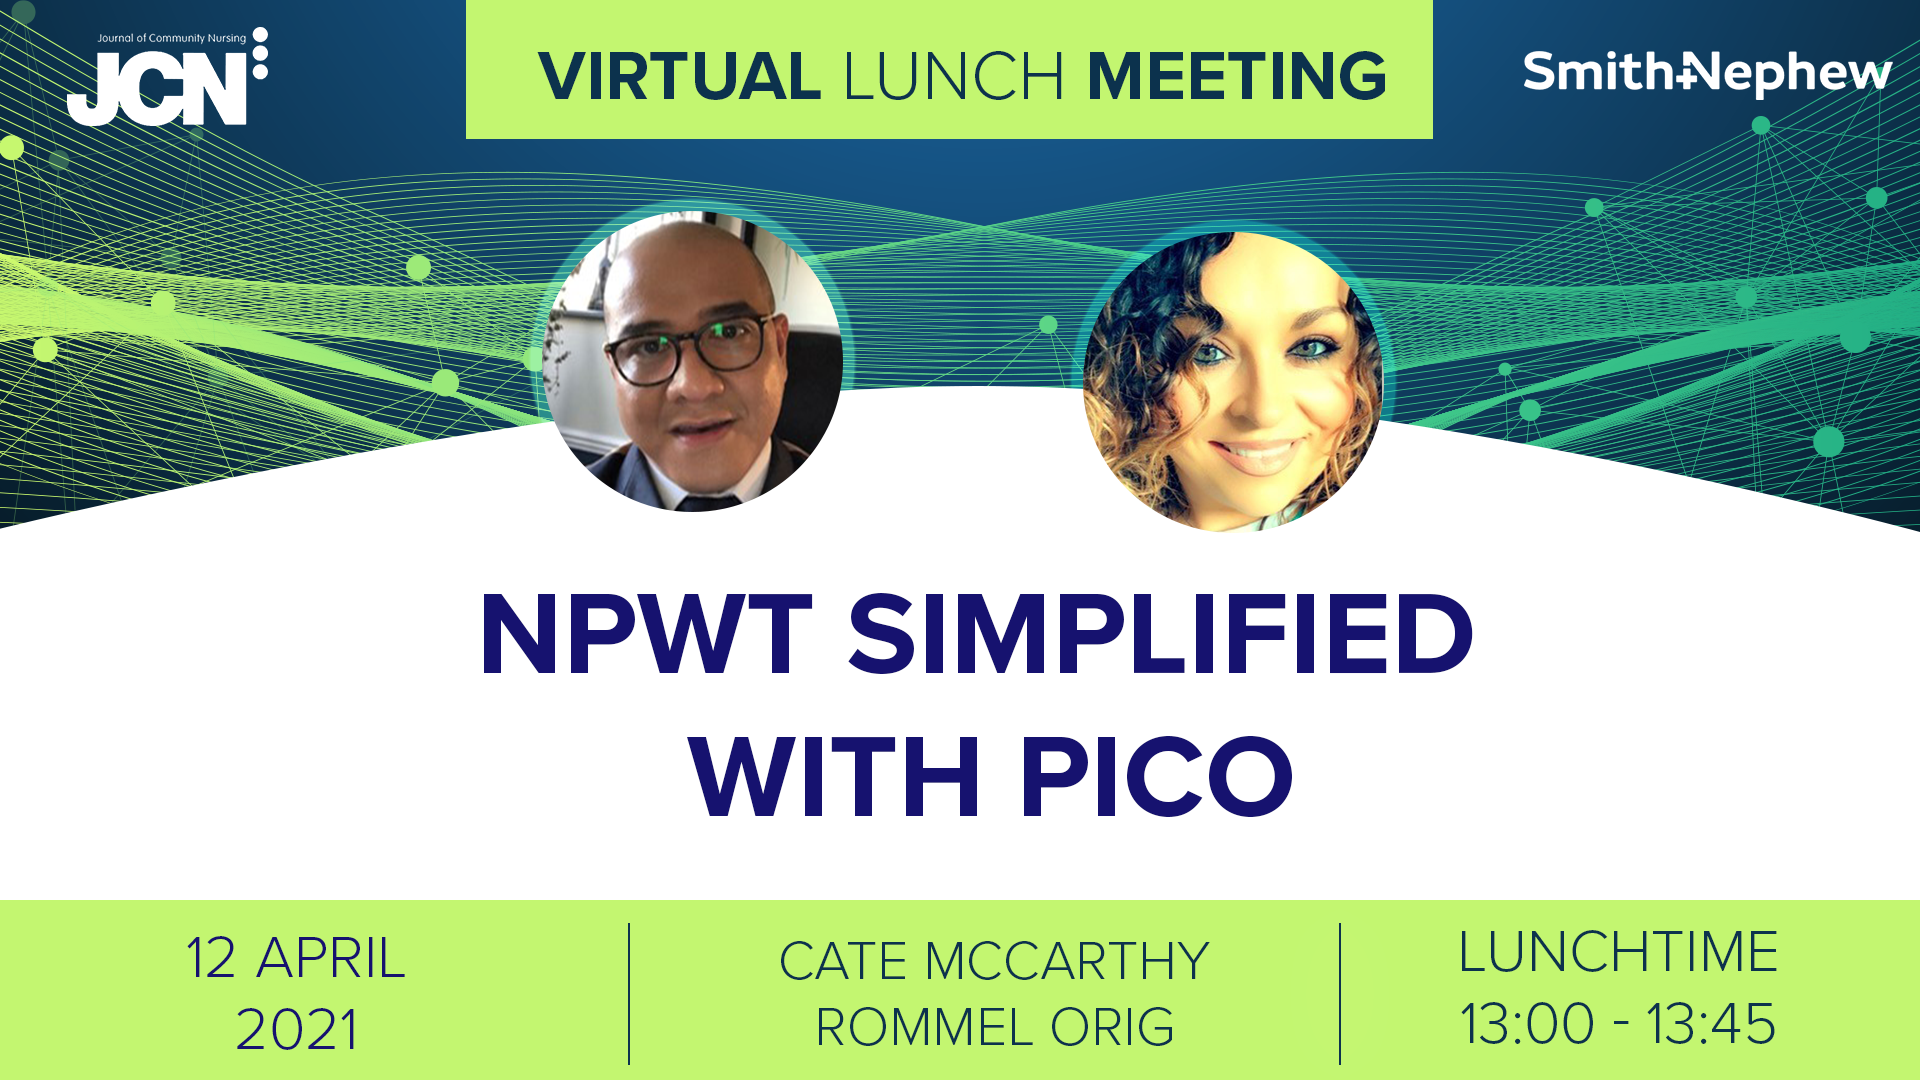 Virtual Lunch Meeting: NPWT simplified with PICO